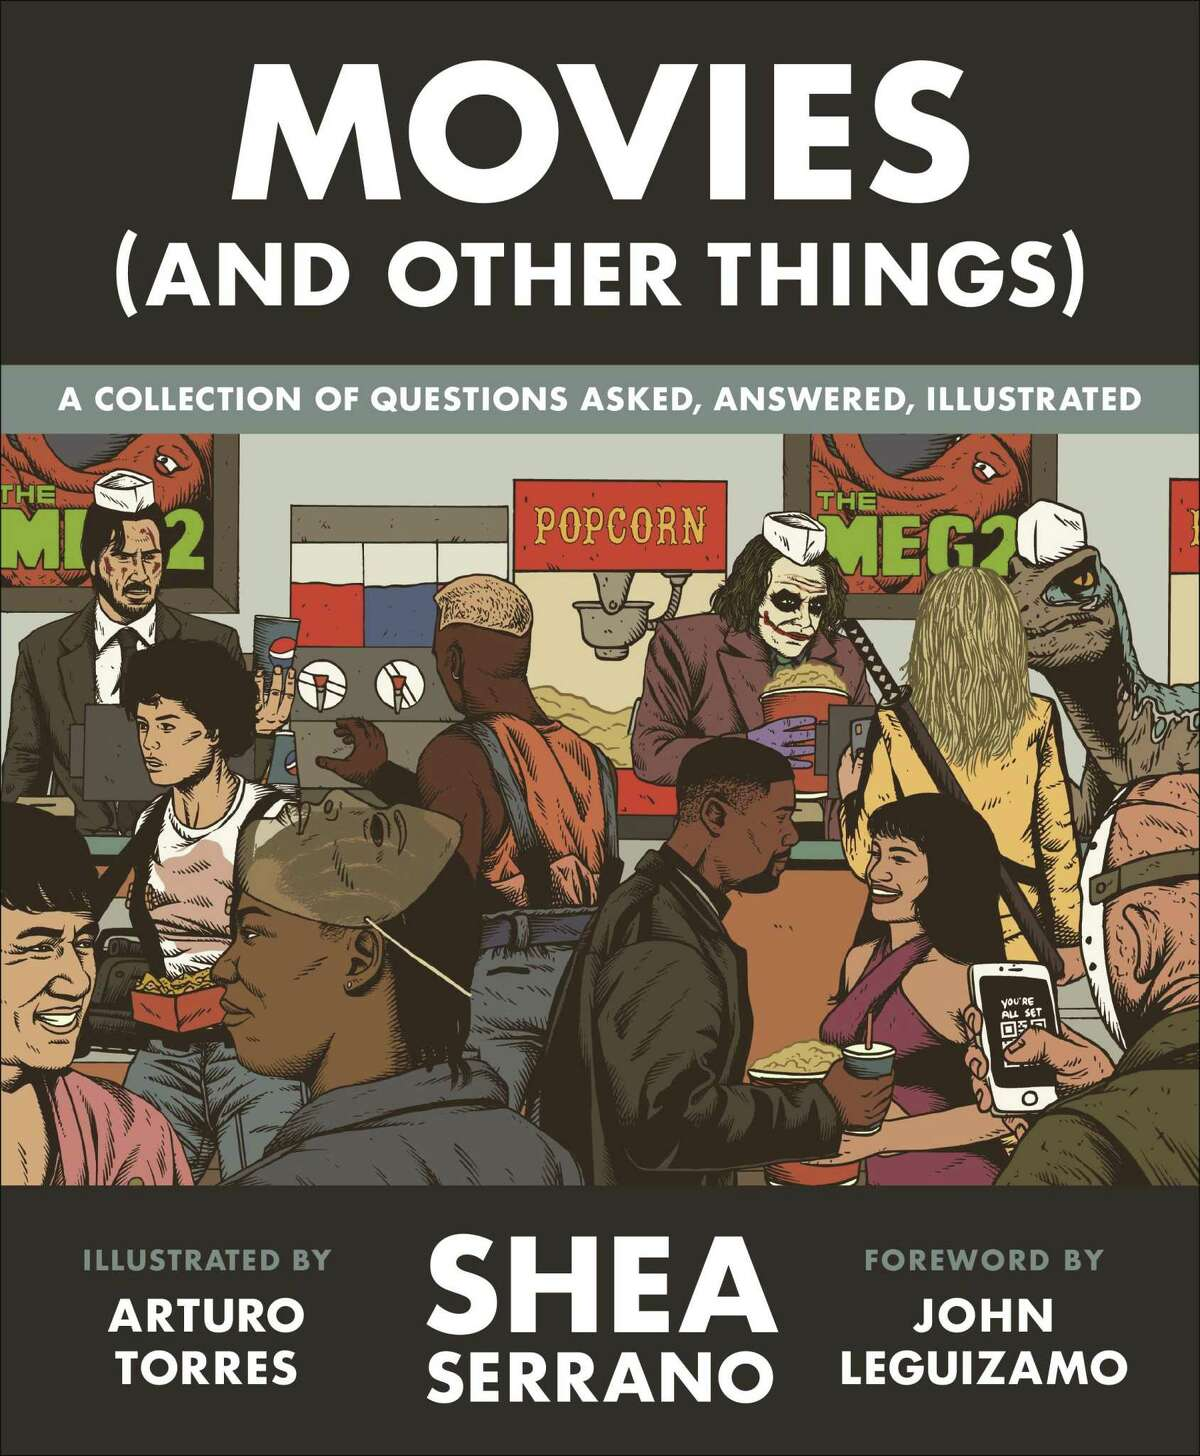 Shea Serrano's new book 'Movies (And Other Things)' covers movie topics with wit and humor. It also features a foreword by actor John Leguizamo and an afterward by actor Don Cheadle.